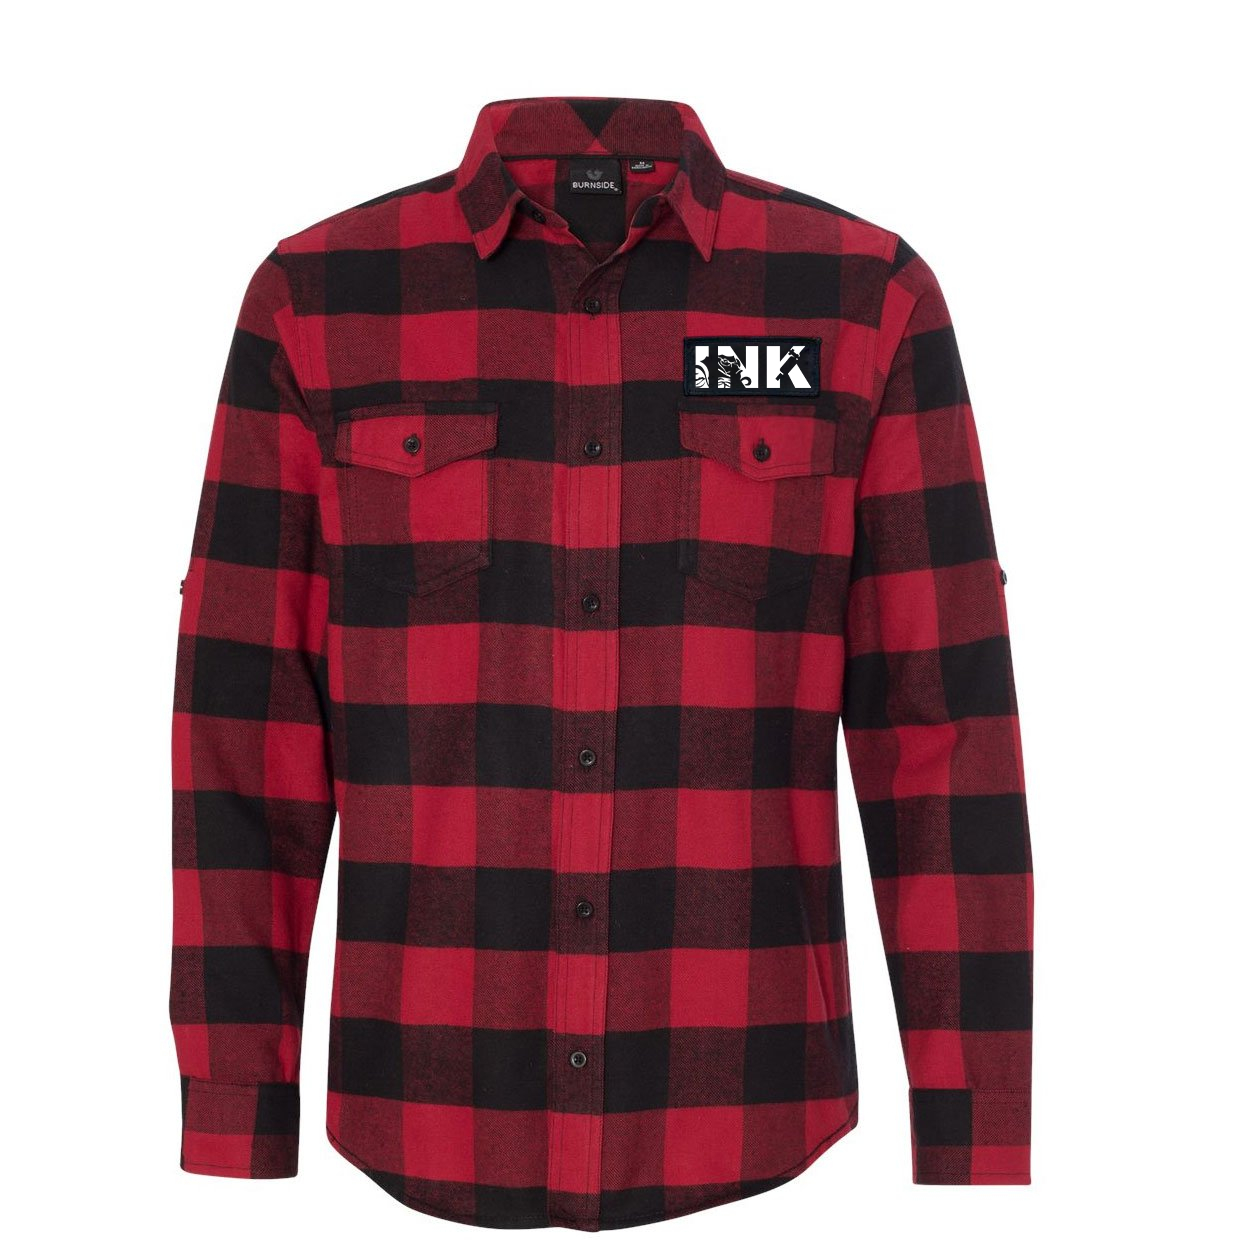 Ink Tattoo Logo Classic Unisex Long Sleeve Woven Patch Flannel Shirt Red/Black Buffalo (White Logo)